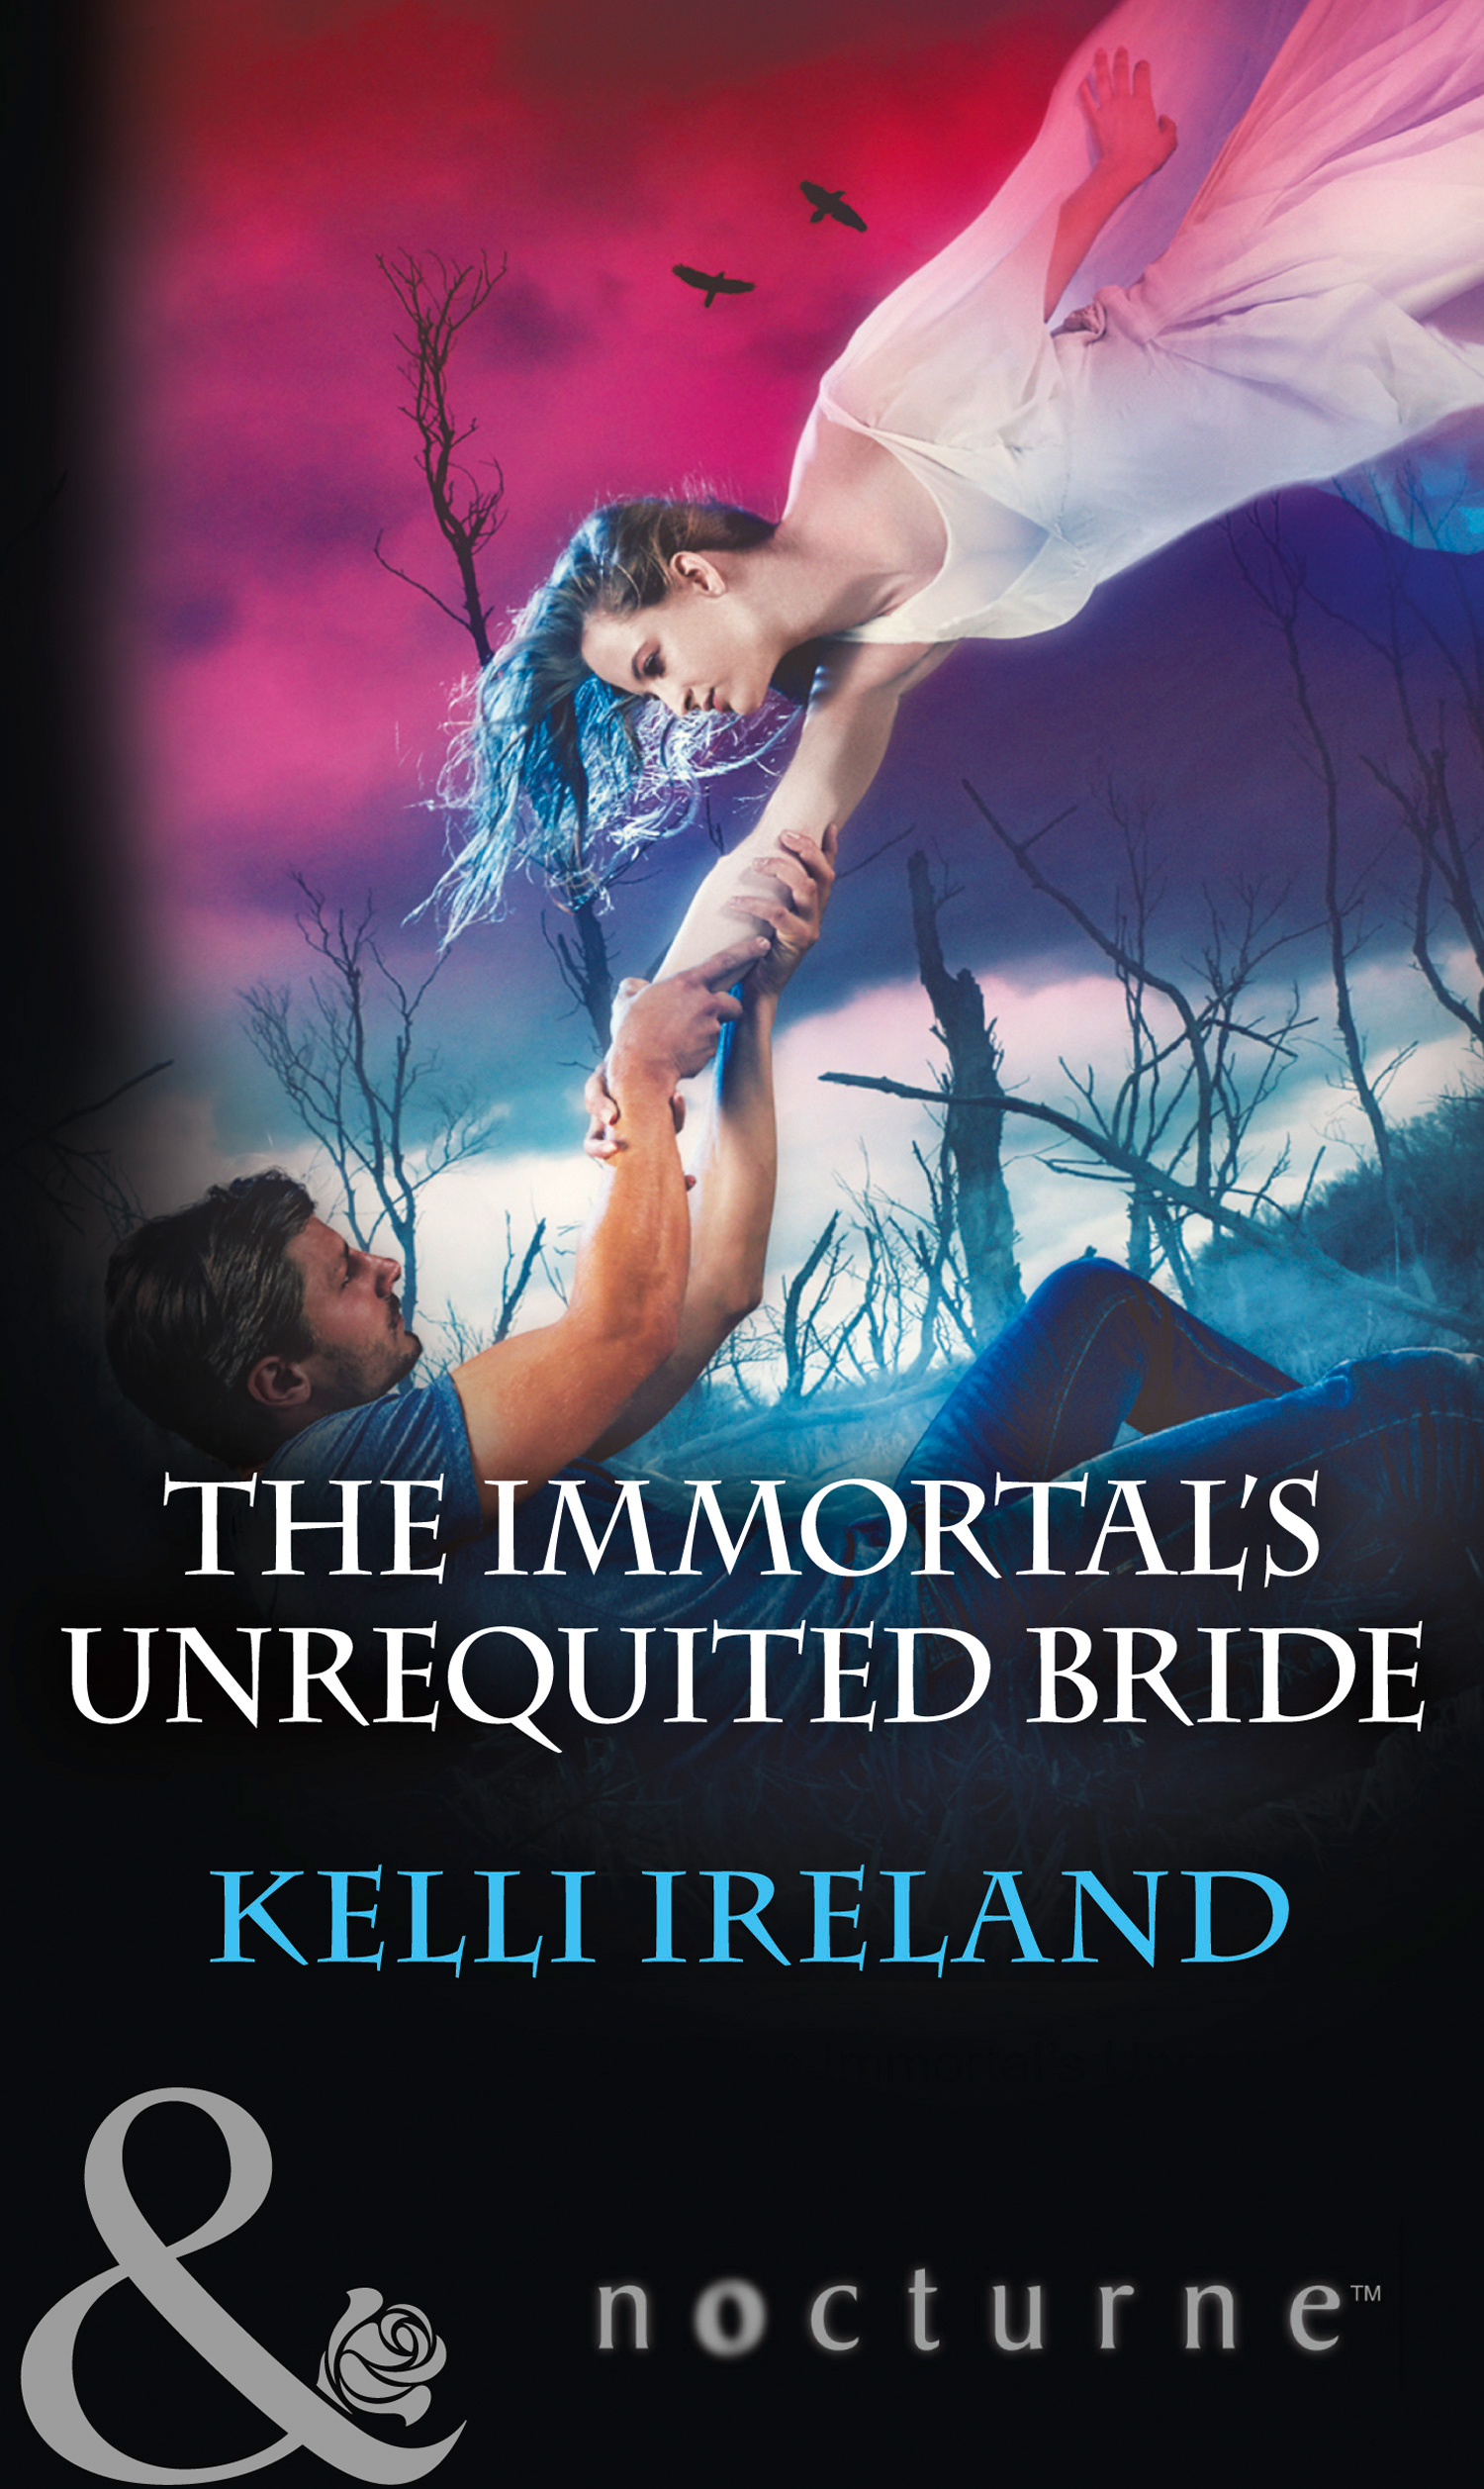 The Immortal's Unrequited Bride